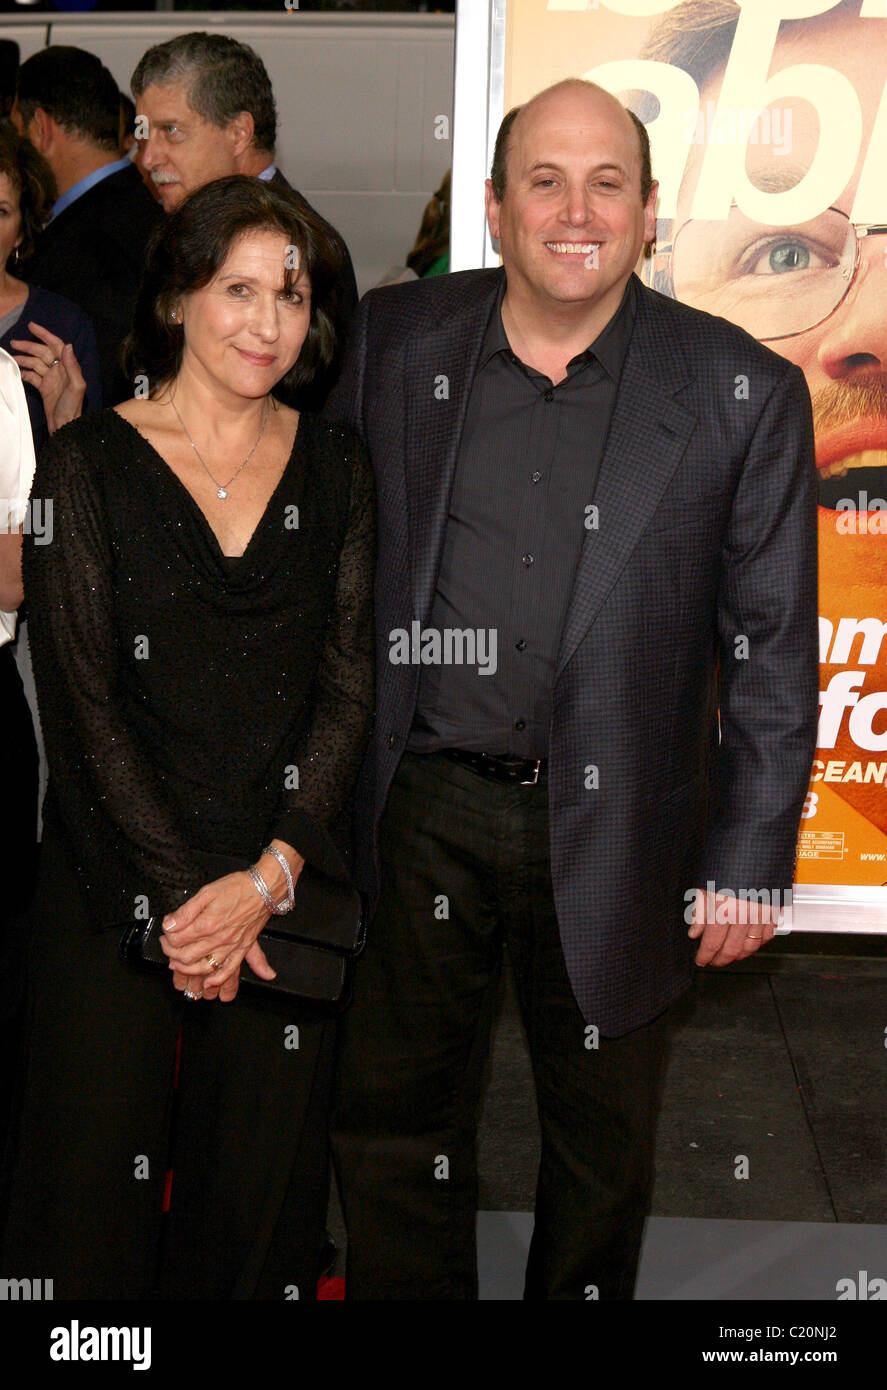 Kurt Eichenwald New York Premiere of 'The Informant' shown at the Ziegfield theater New York City, USA  - Stock Image